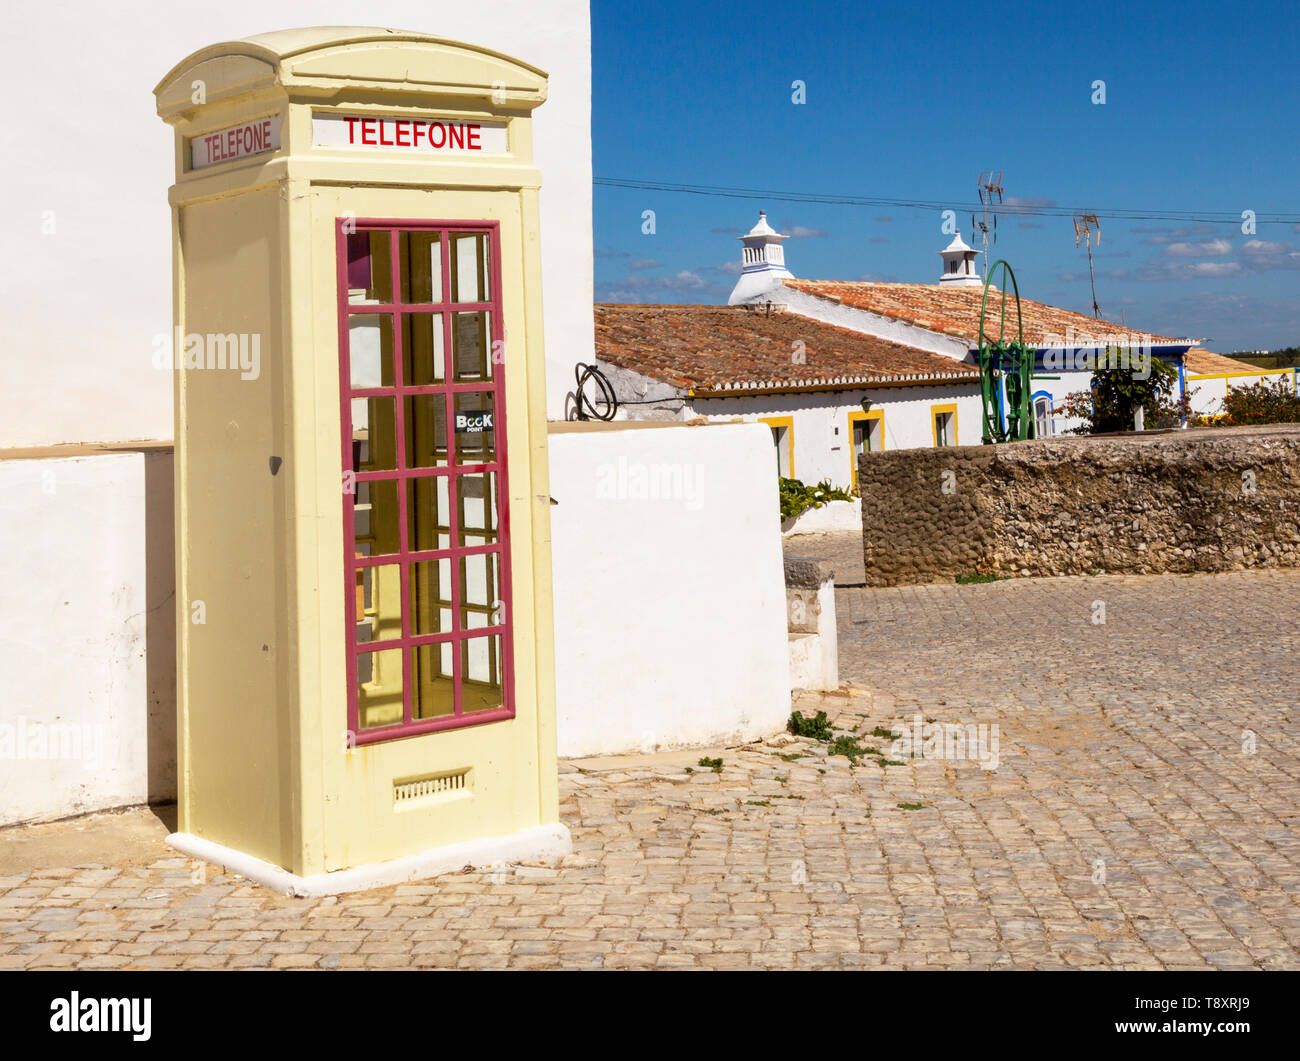 Old fashioned Telephone Telefone box kiosk in street of traditional Portuguese village, Cacela Velha, Algarve, Portugal, Southern Europe - Stock Image